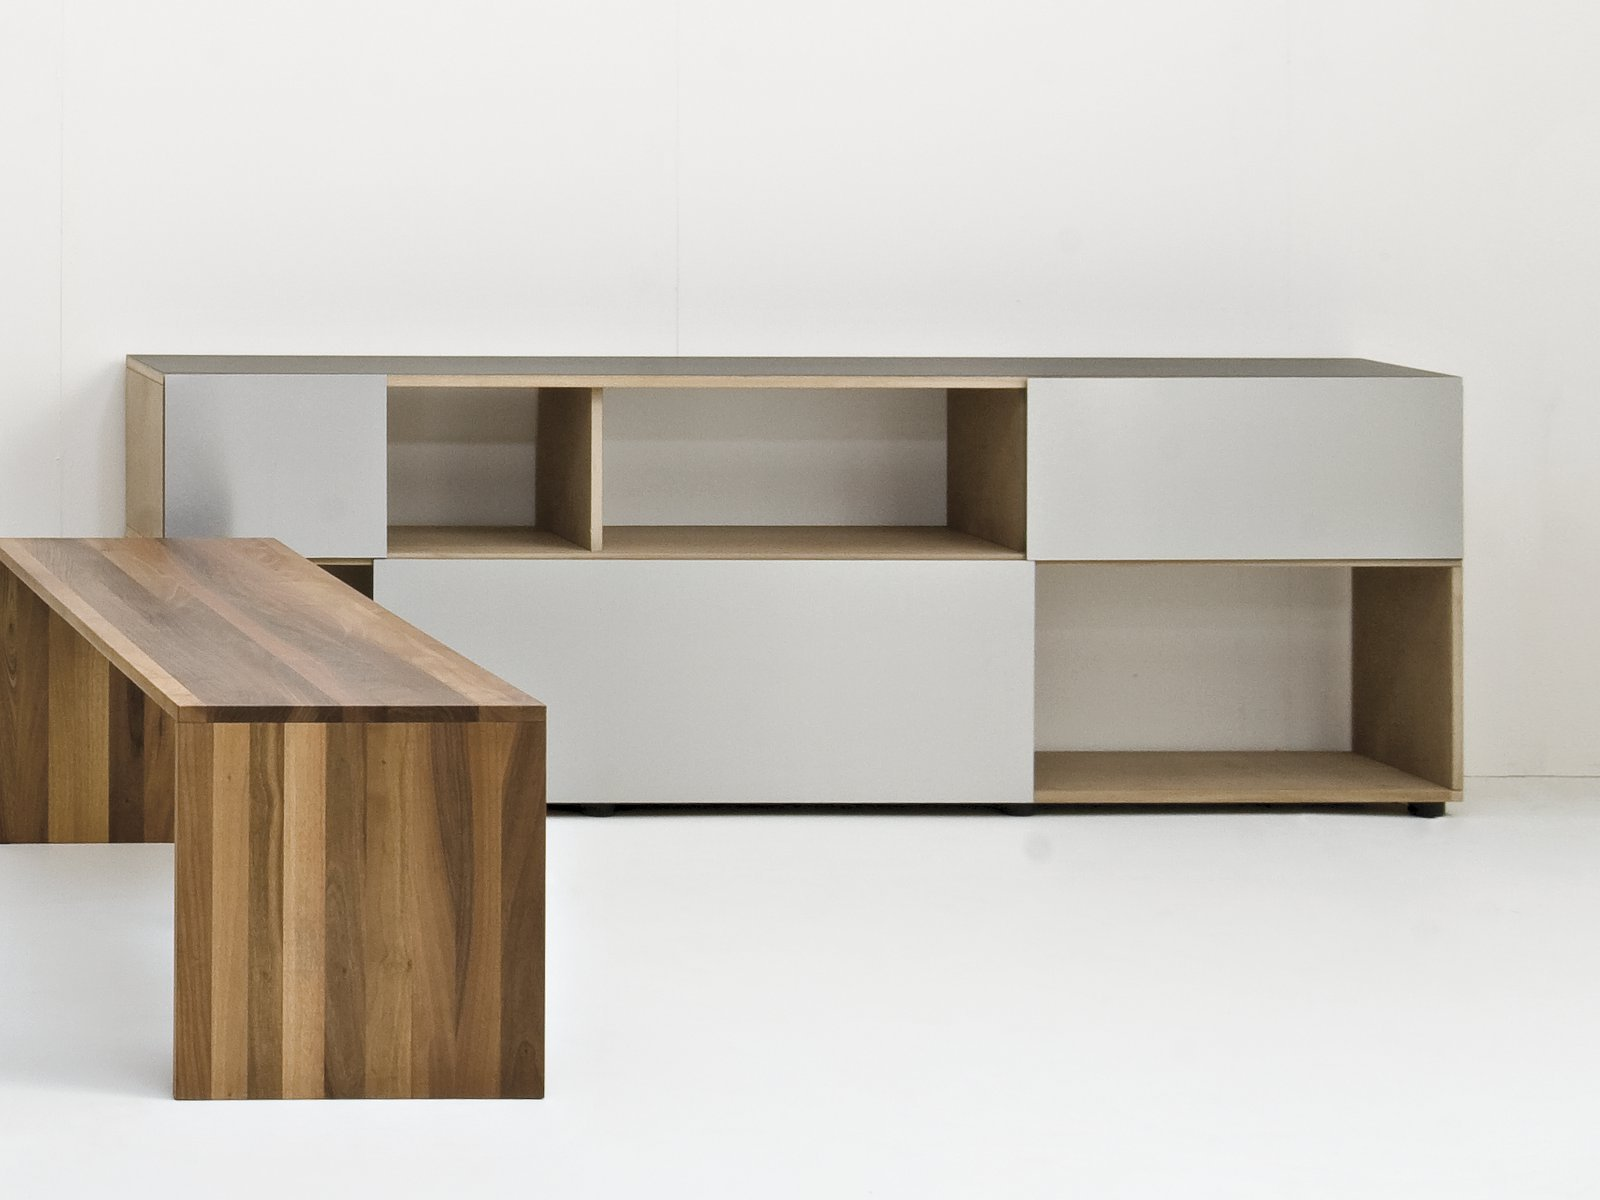 sideboard with sliding doors analog by sanktjohanser. Black Bedroom Furniture Sets. Home Design Ideas